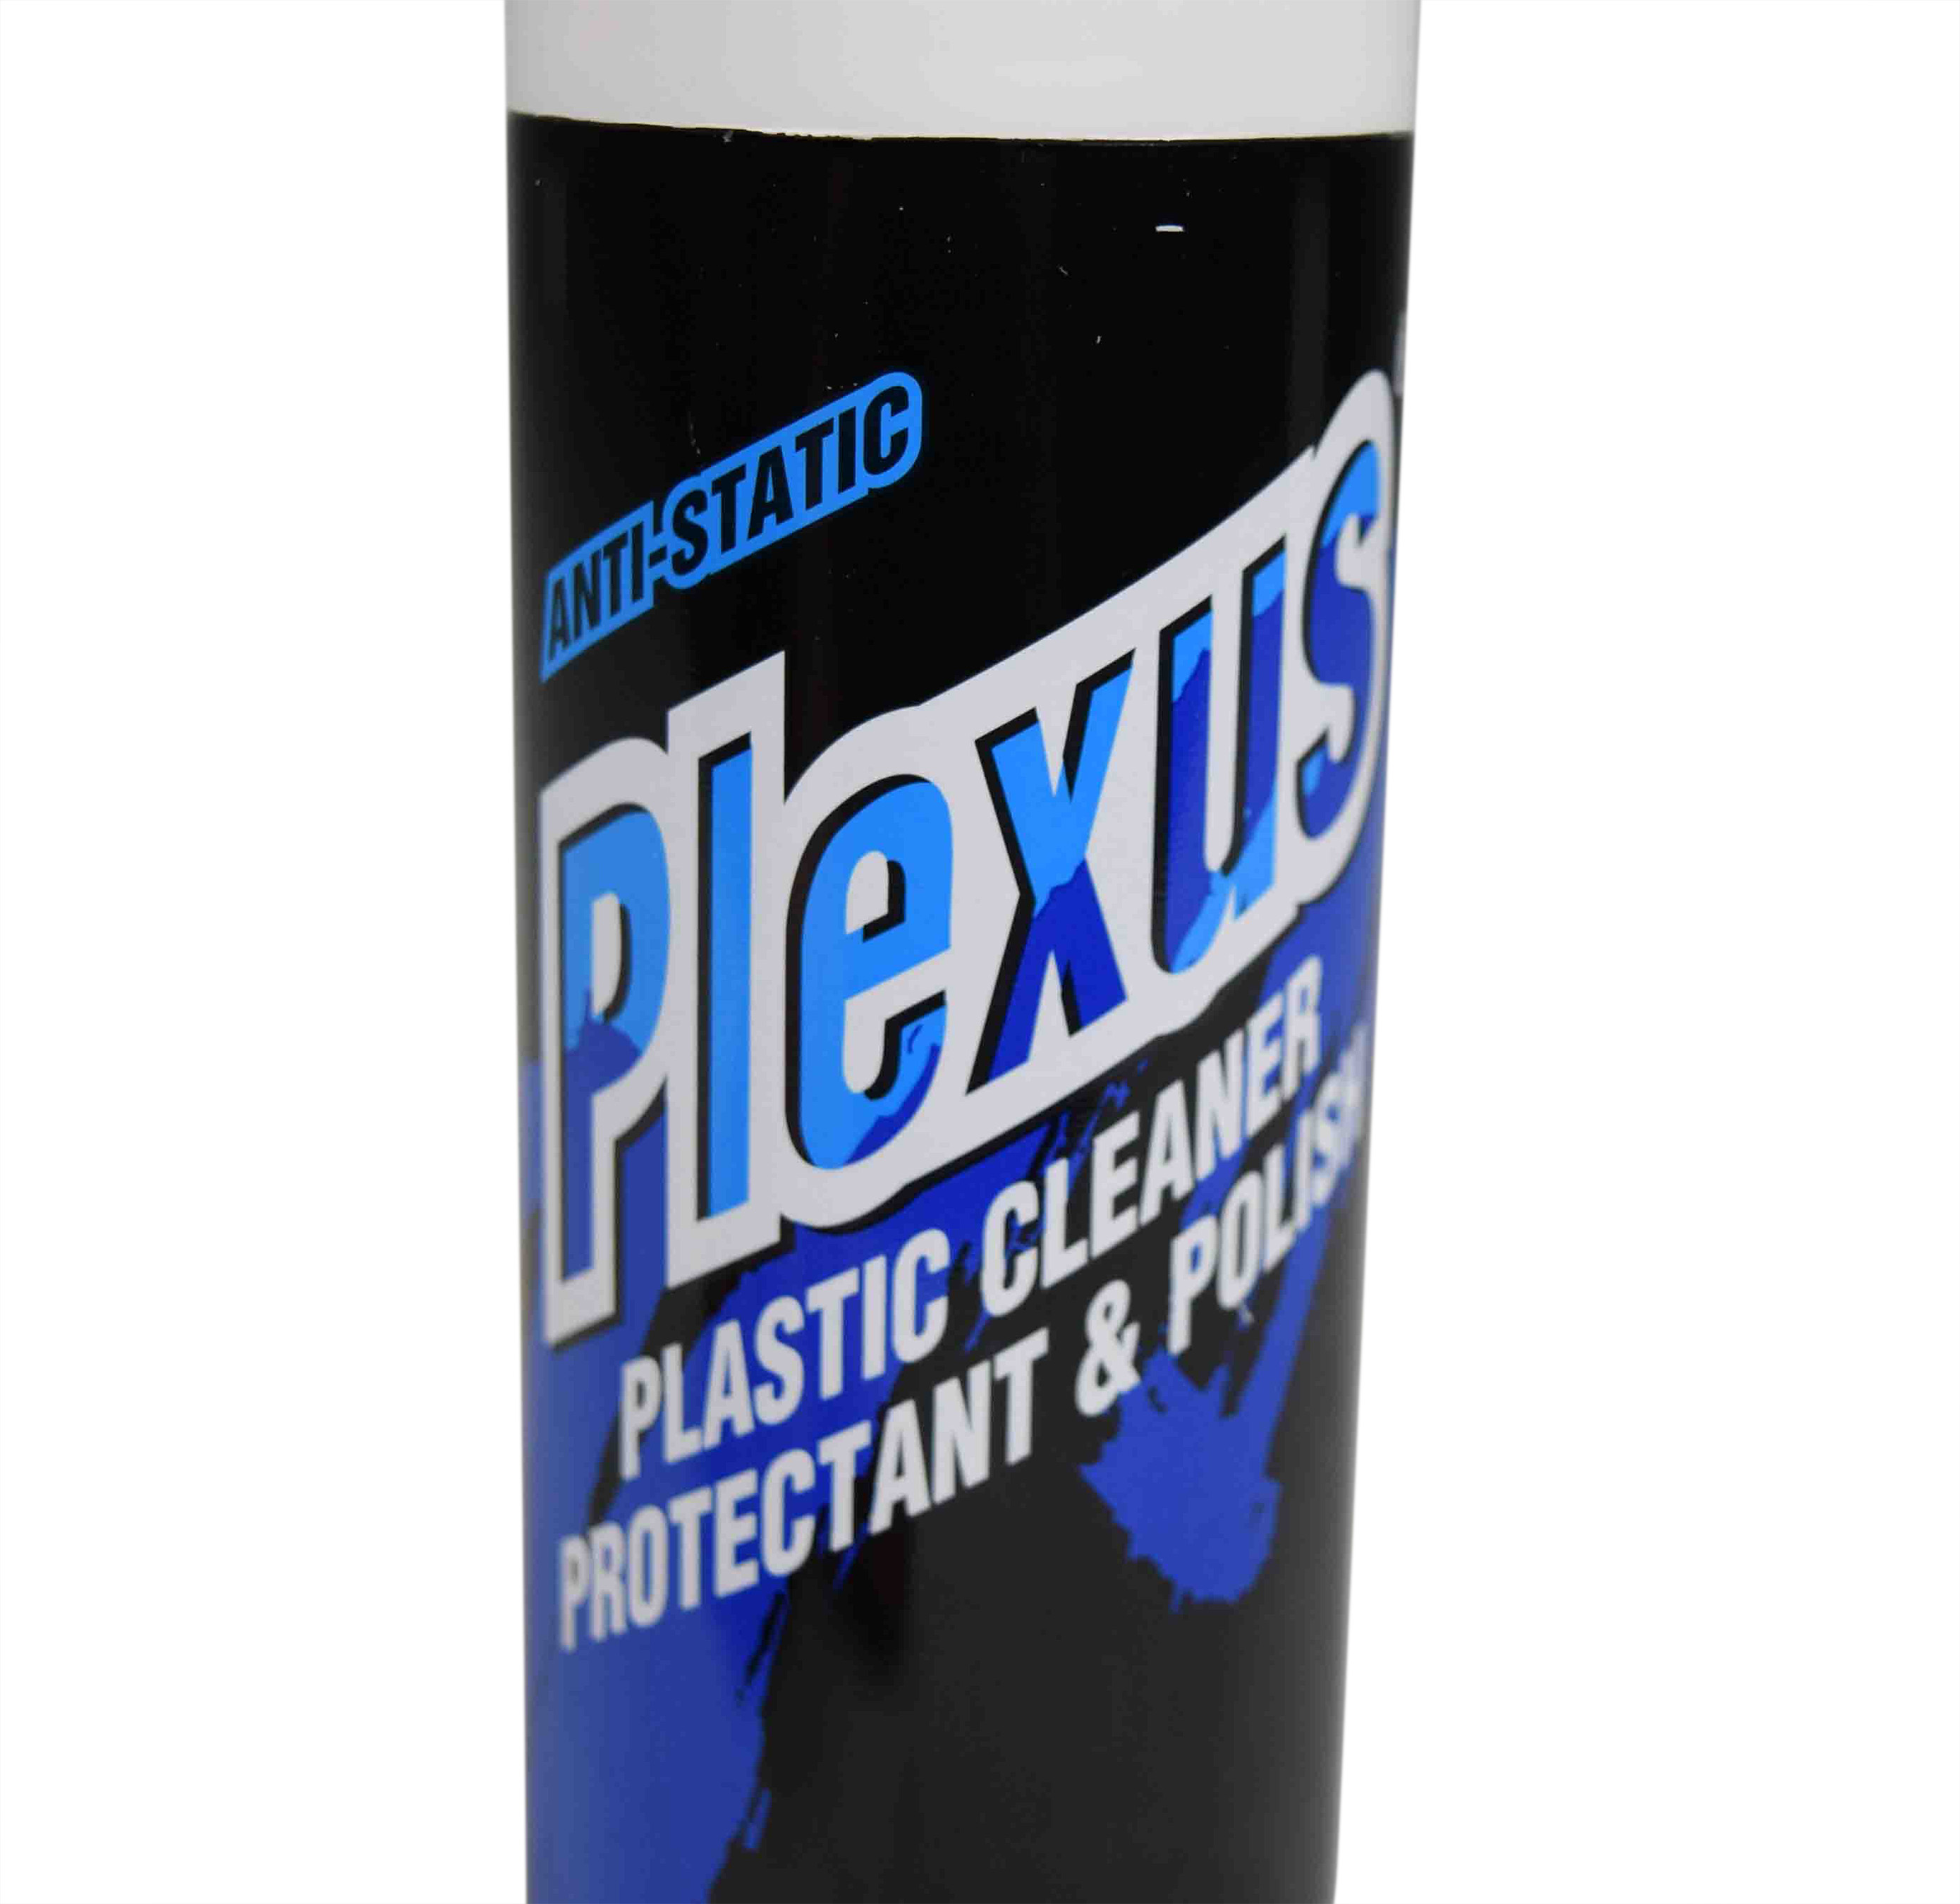 Plexus-Plastic-Cleaner-Protectant-Polish-7oz-Can-6-Pack-MADE-In-the-USA-image-3